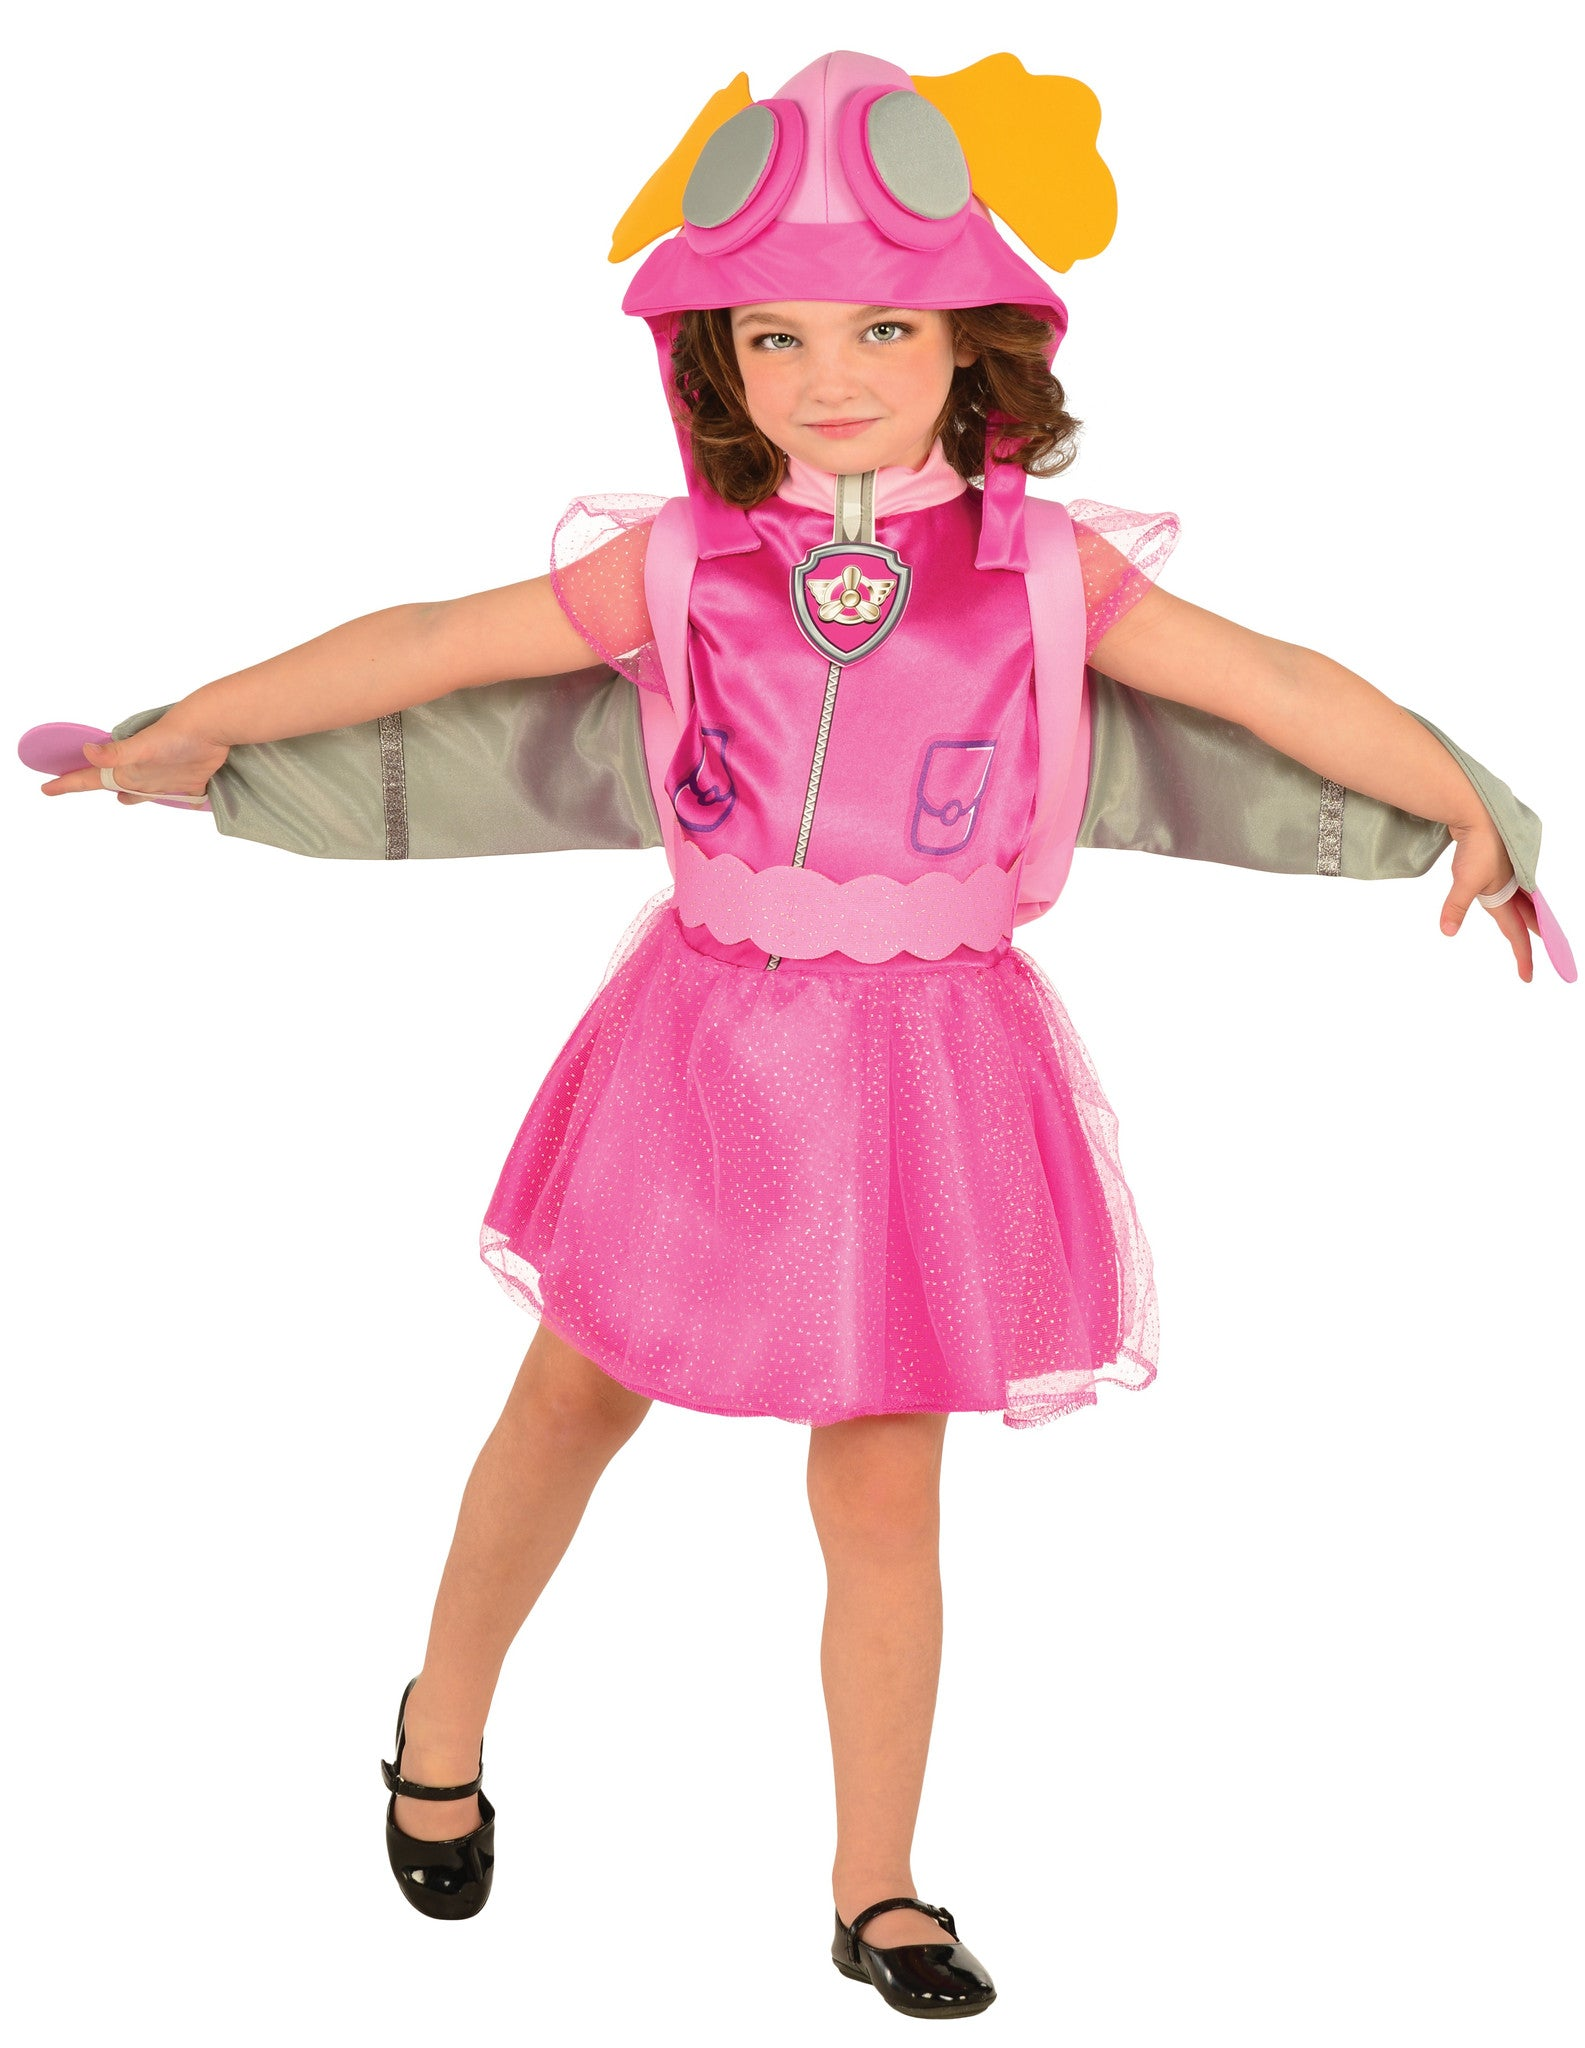 Girls Paw Patrol Skye Costume